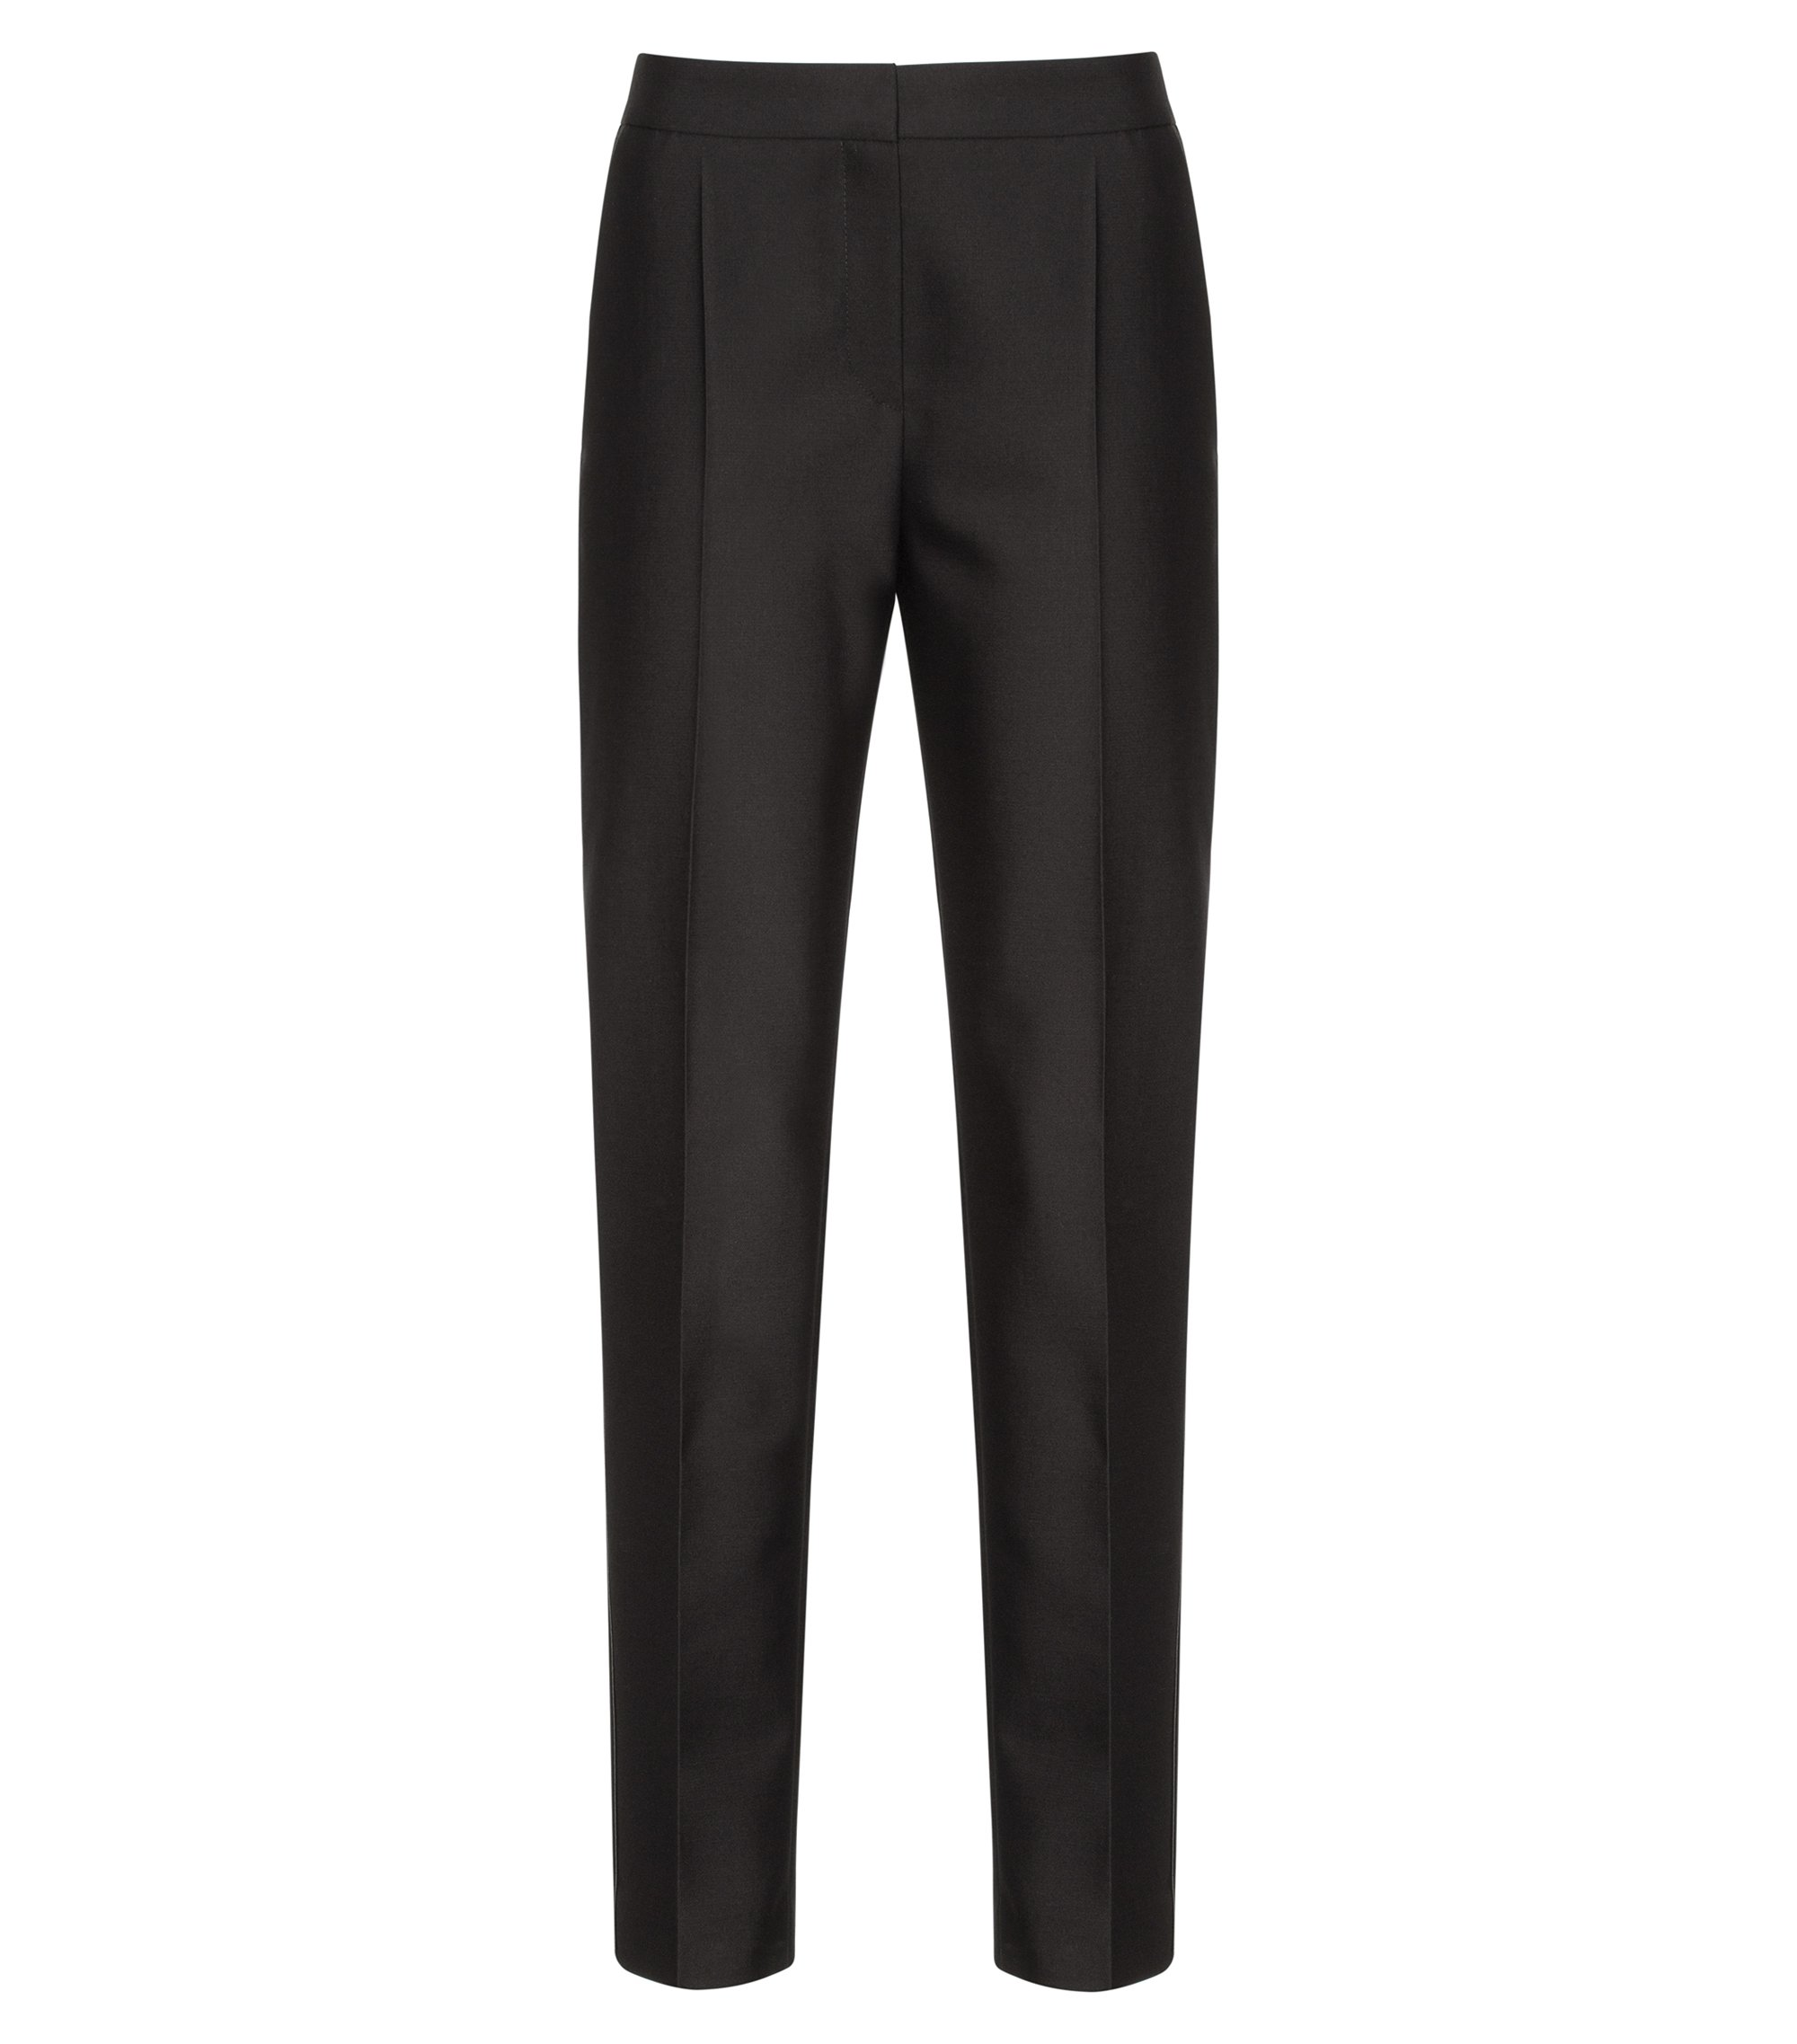 Slim-fit trousers in a wool blend, Black